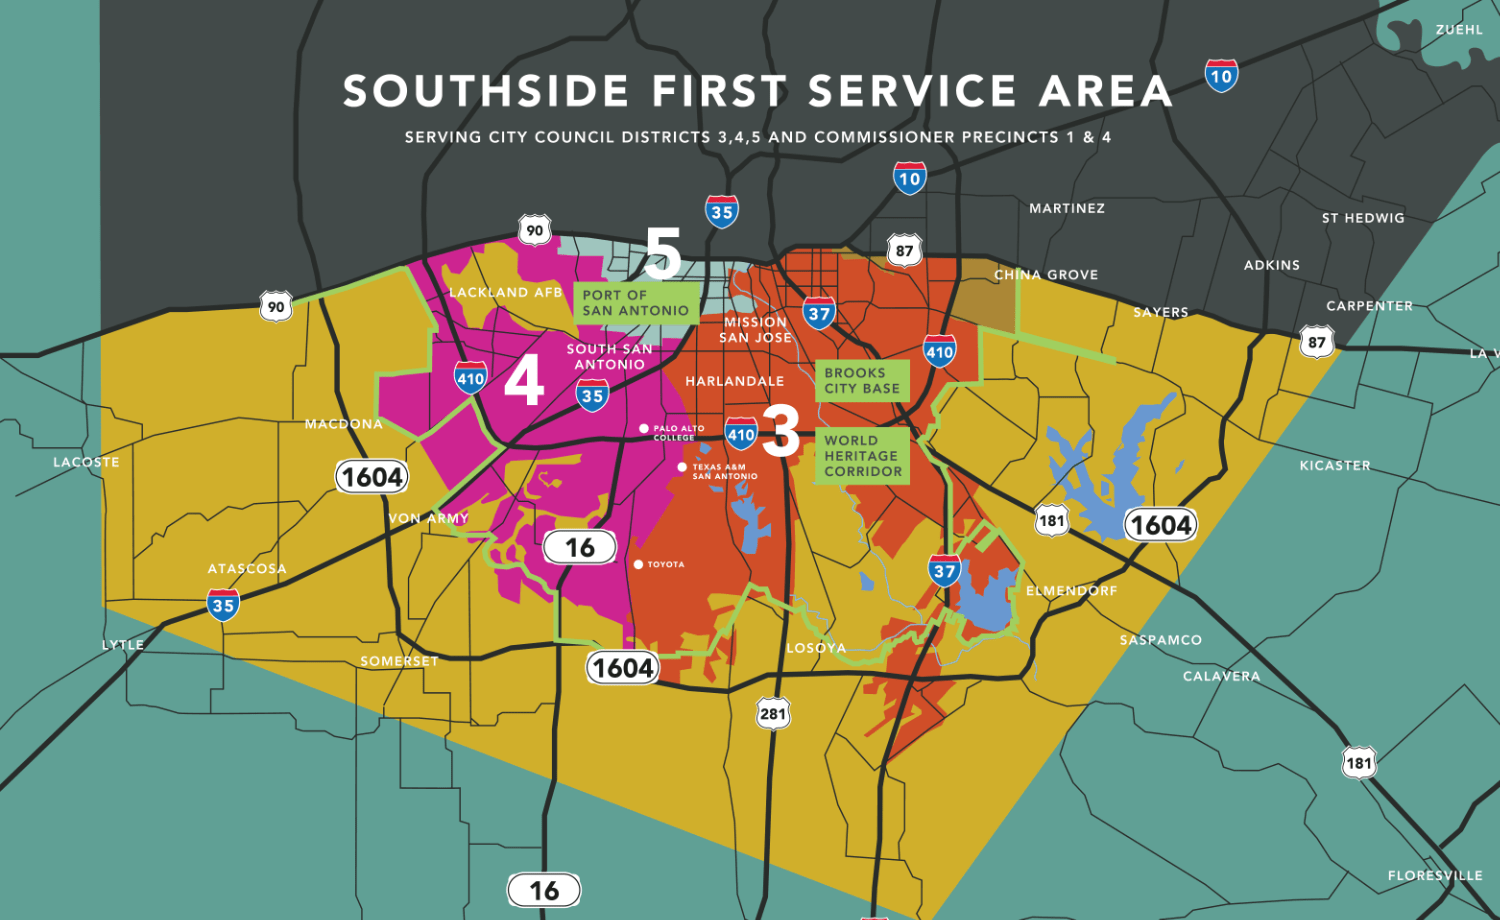 Mission DG Invests in the Southside